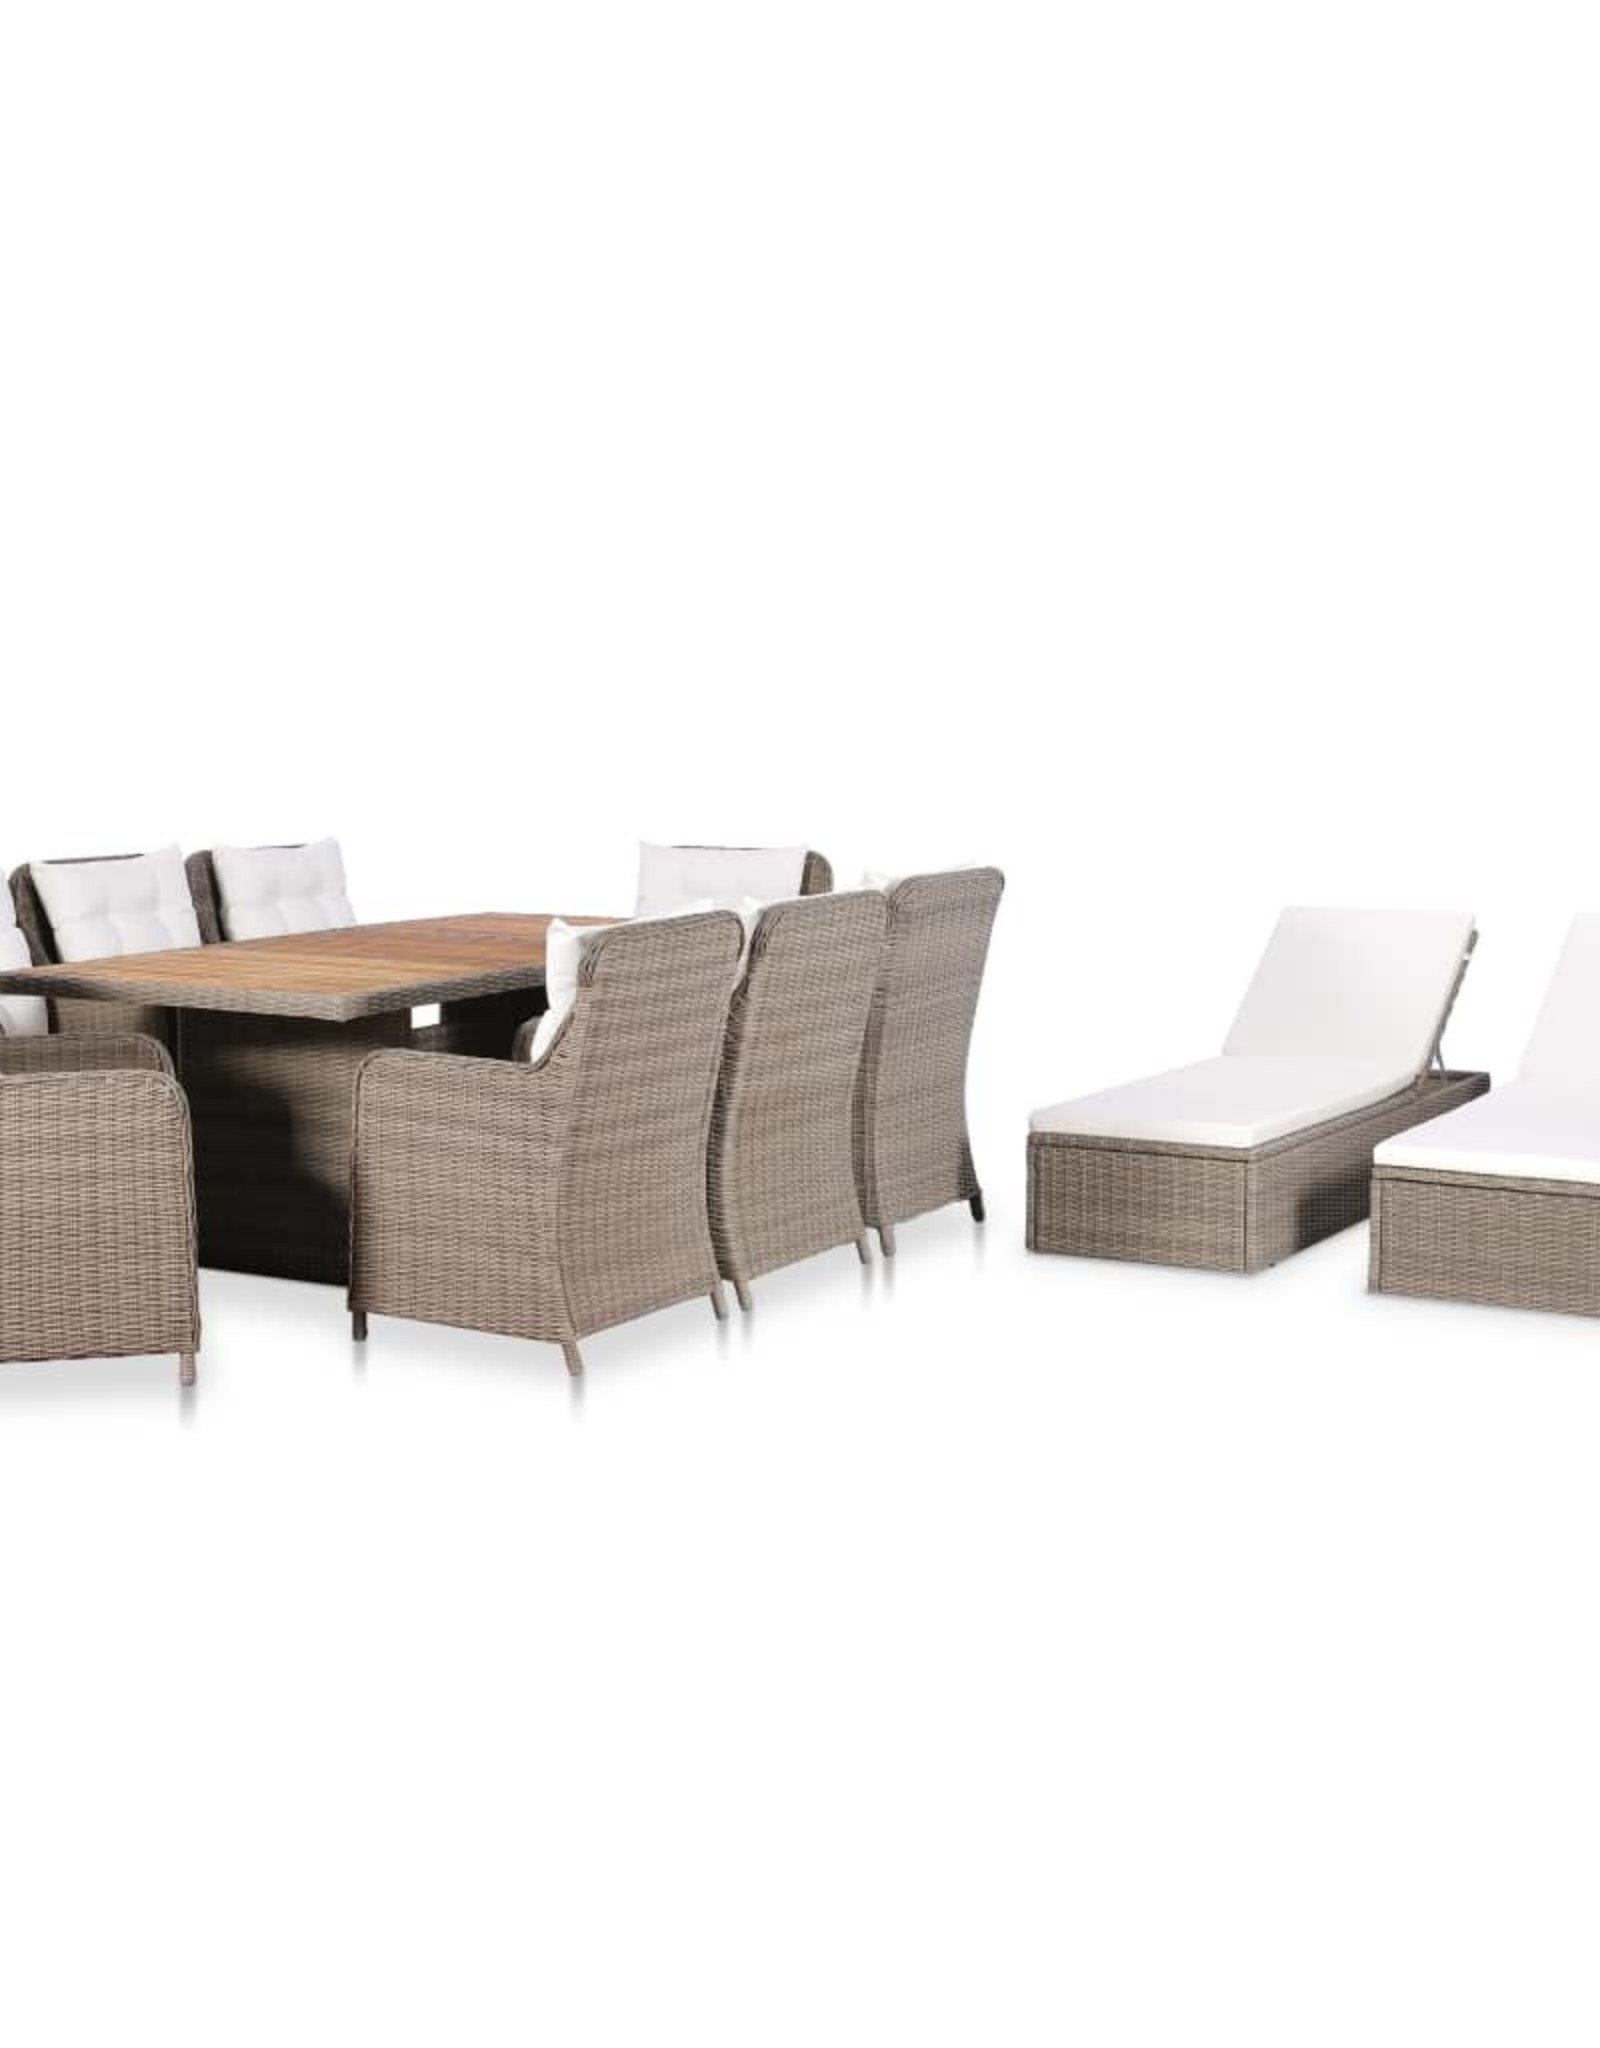 11-delige Tuinset poly rattan